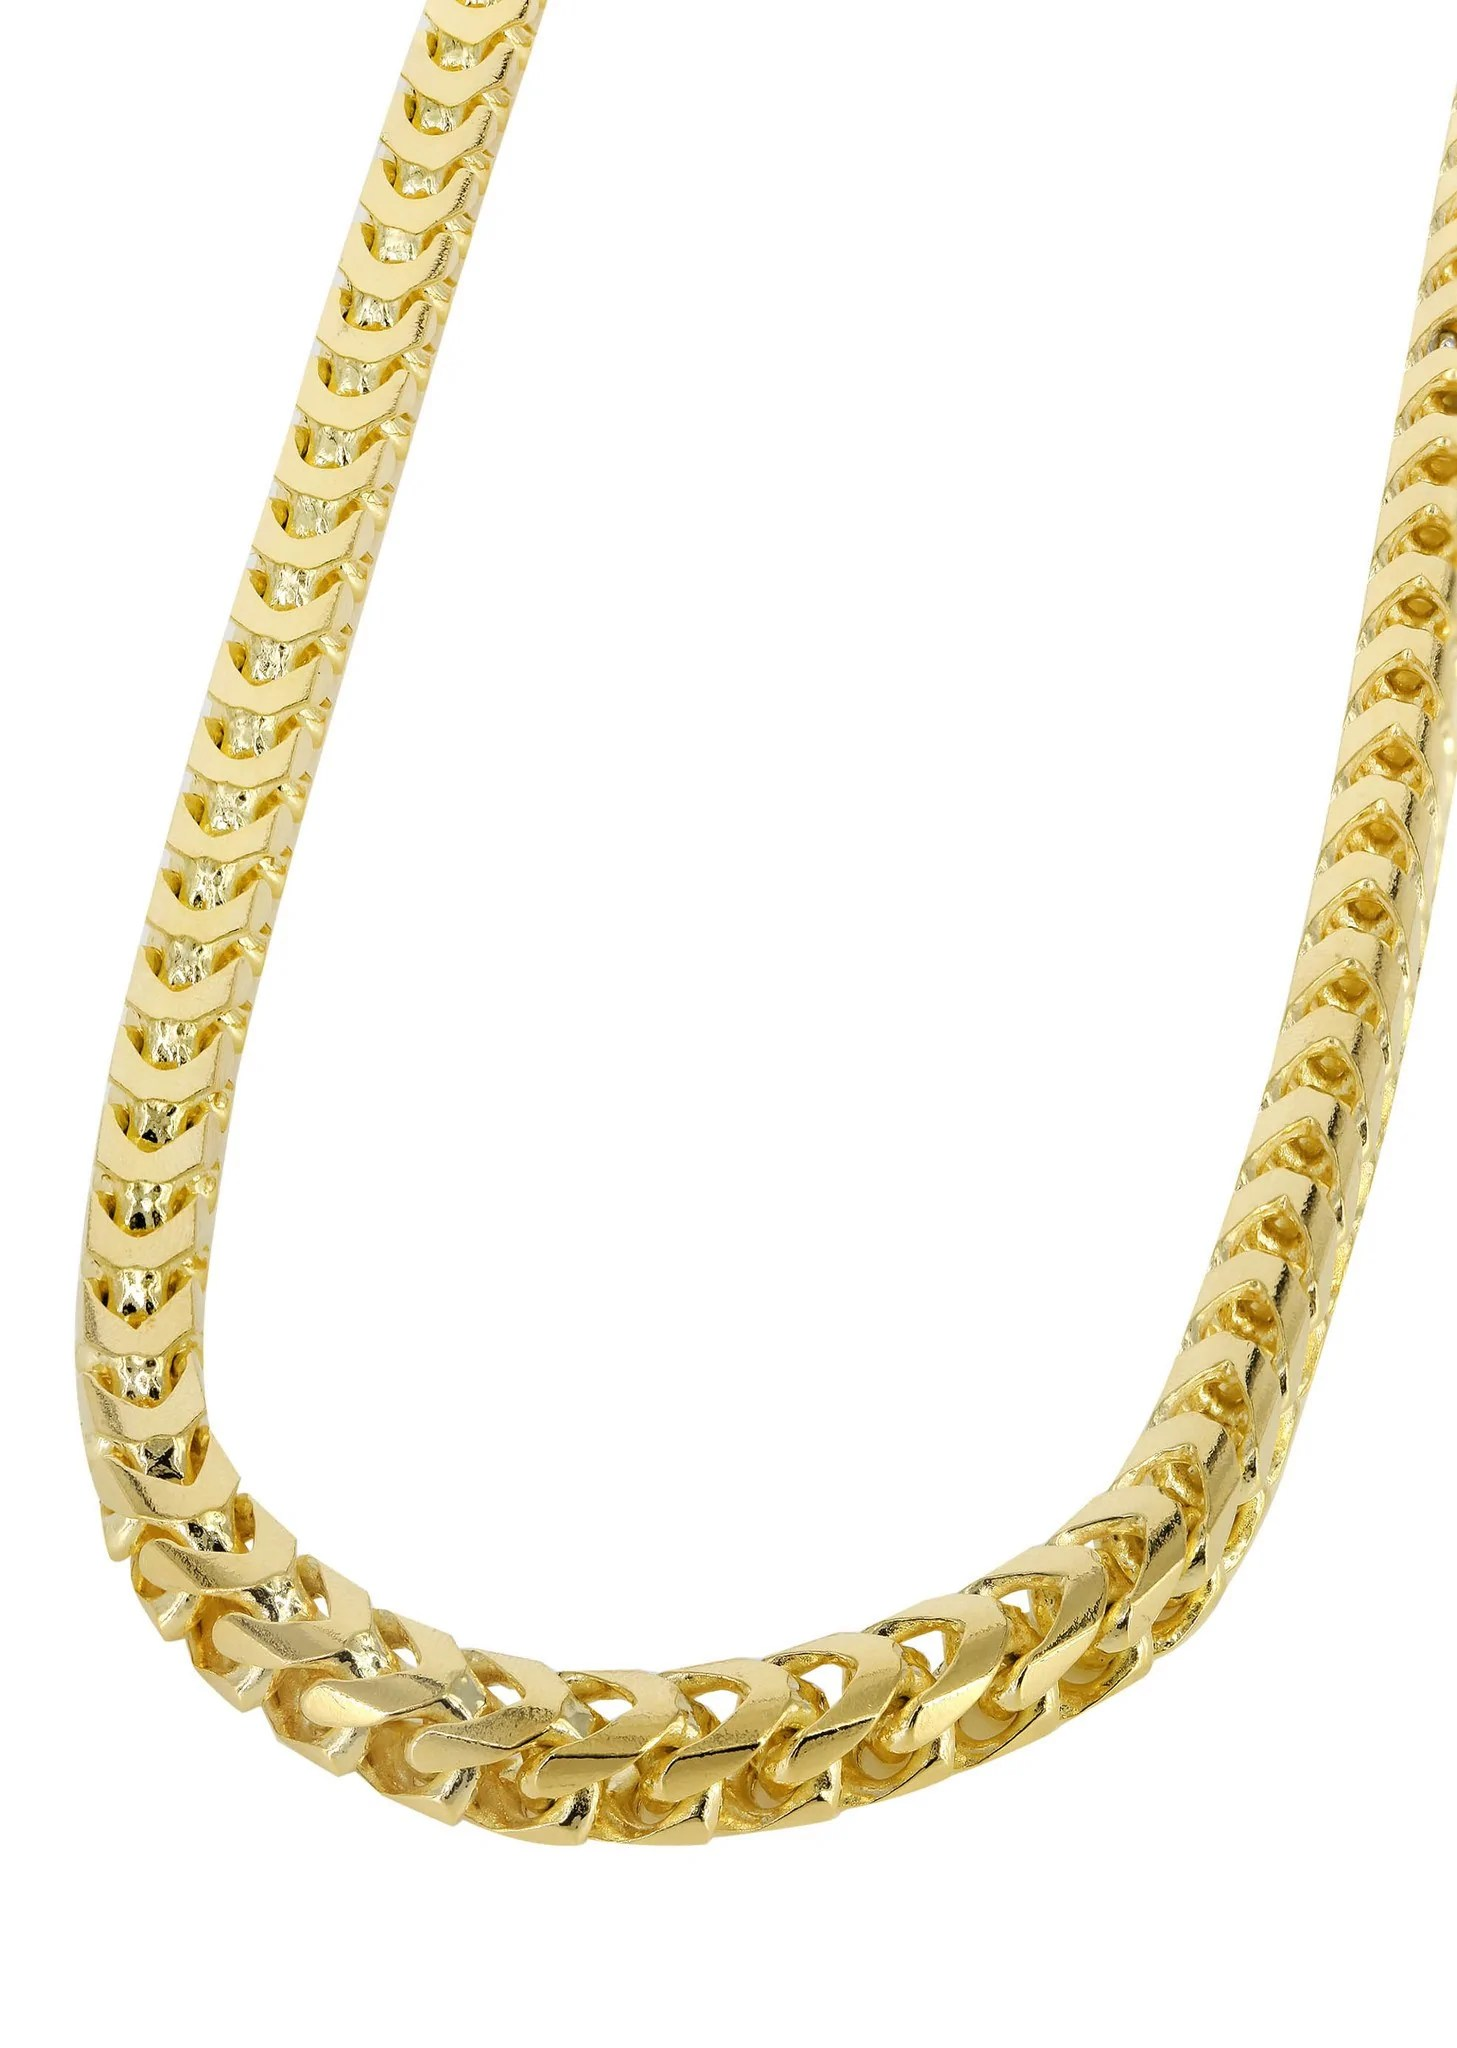 Solid Mens Franco Chain 10k Yellow Gold Frostnyc